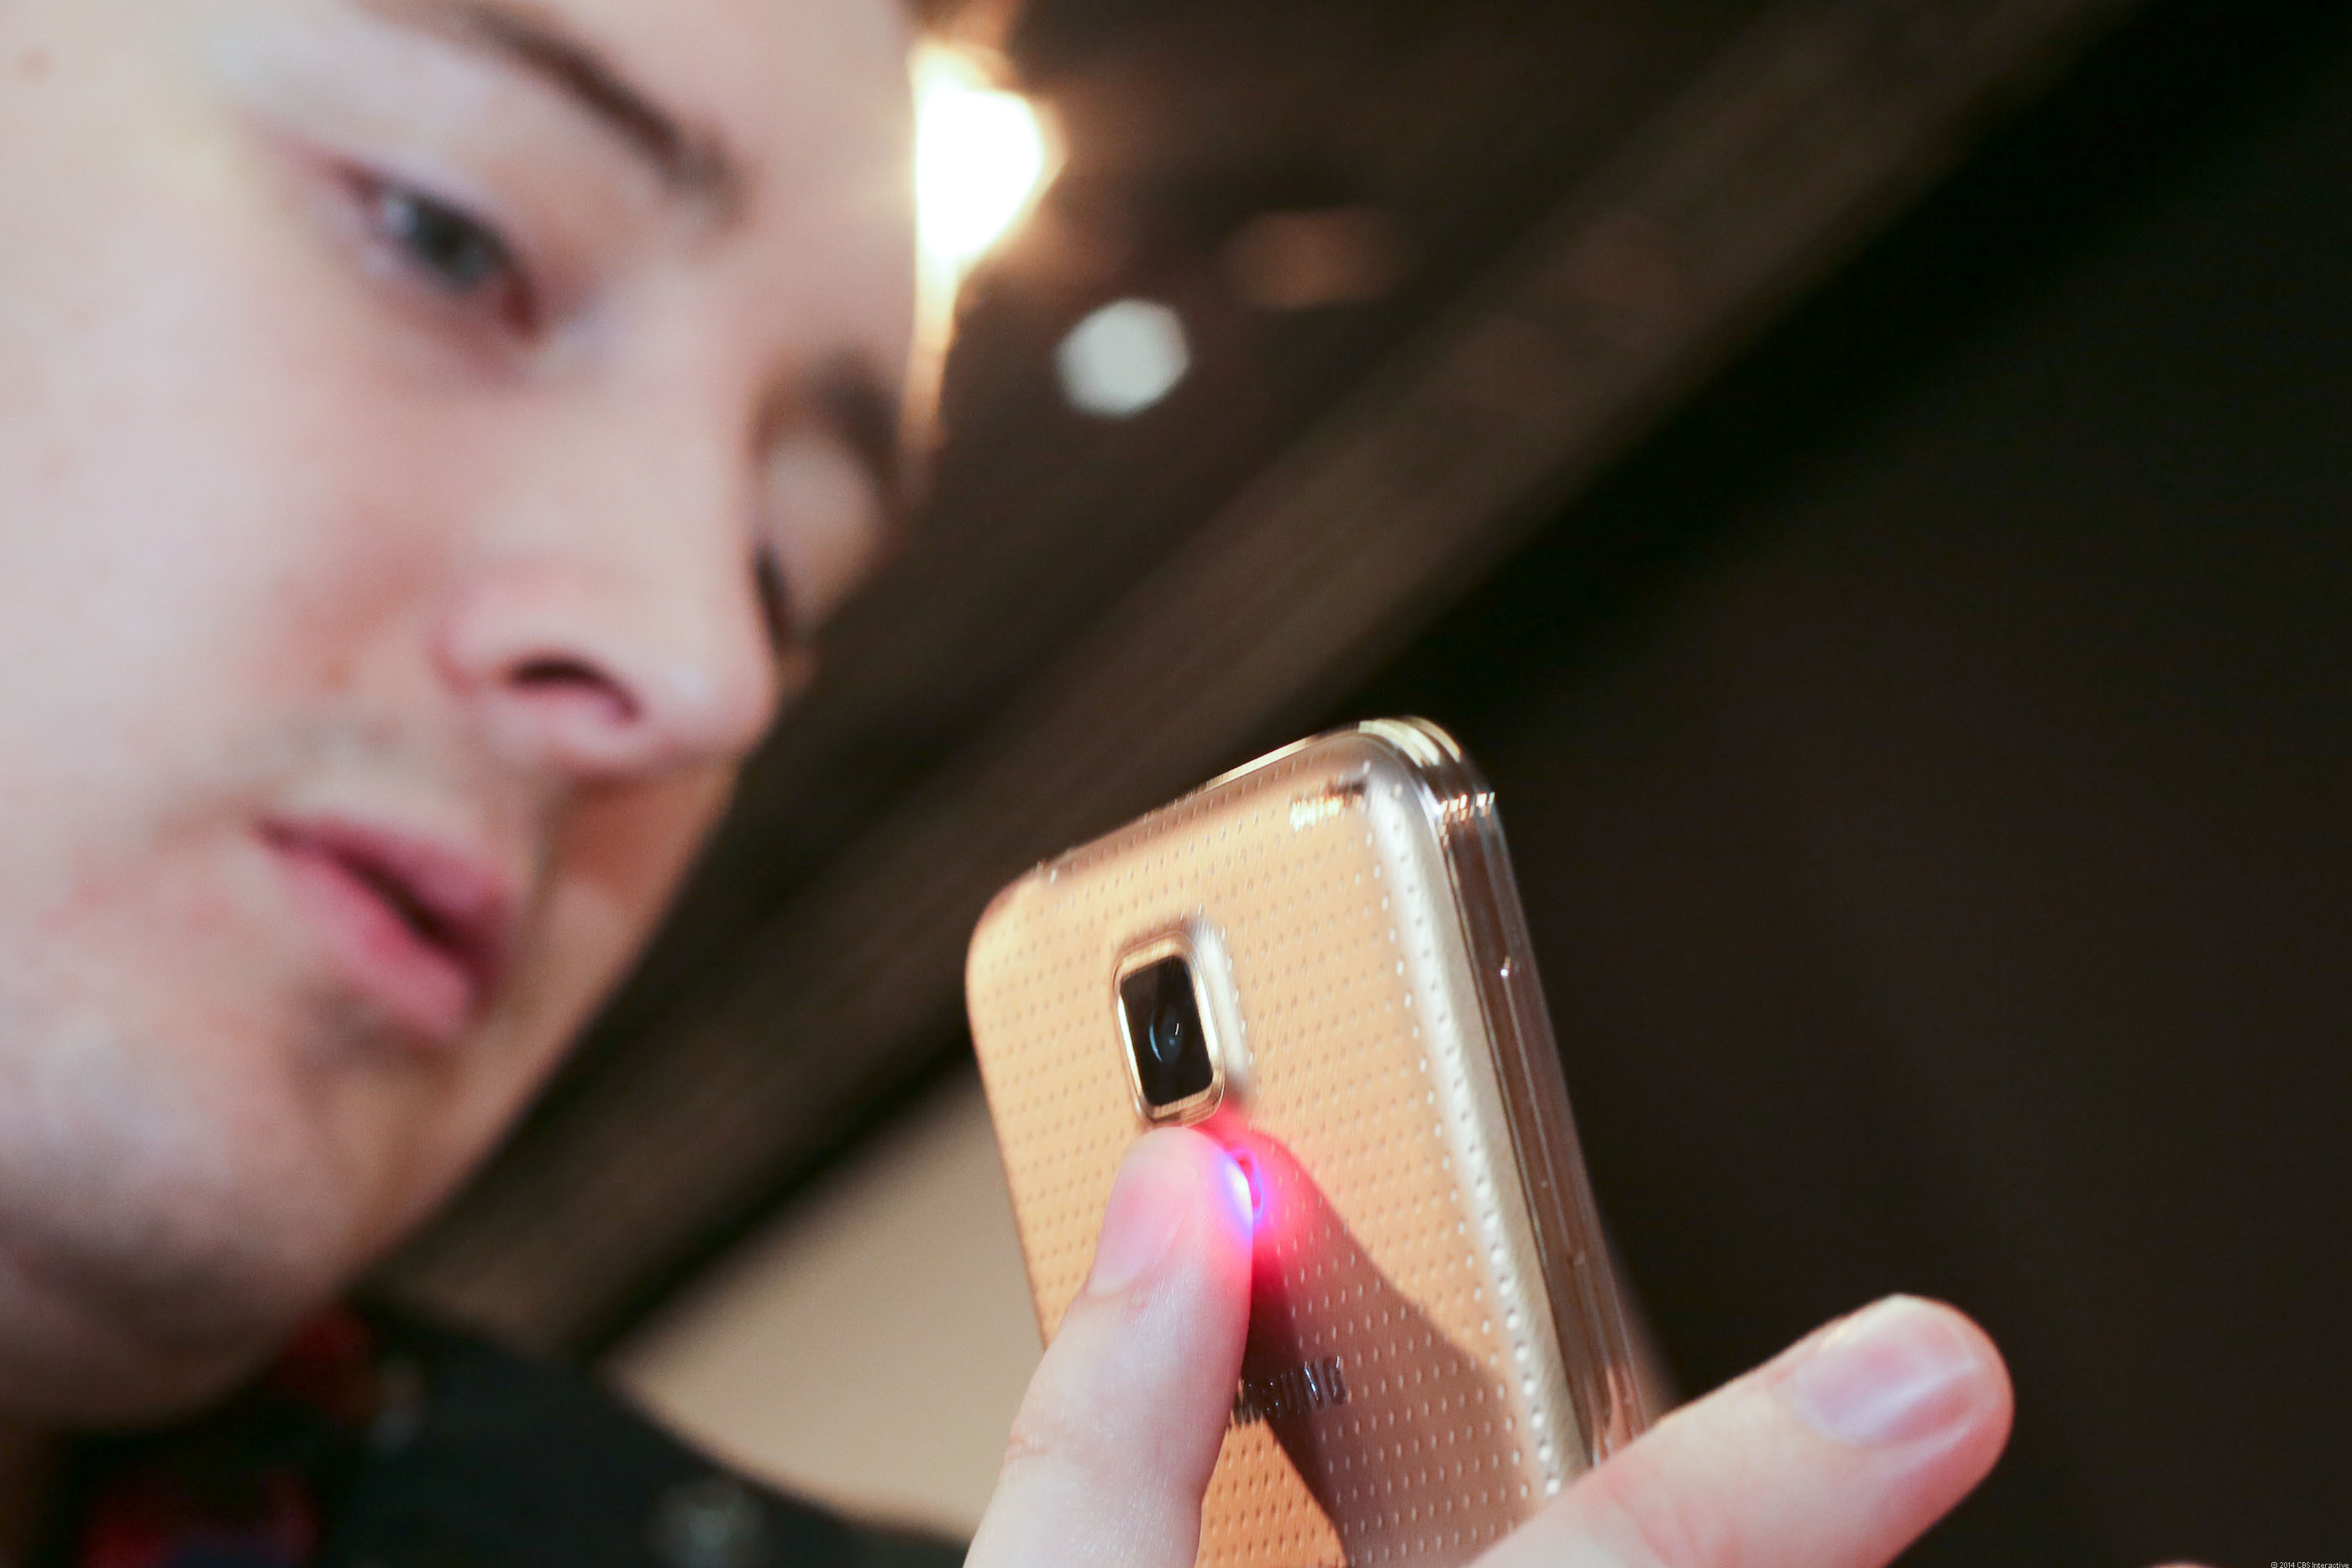 CNET's Luke Westaway surveys his health on using the Samsung Galaxy S5's built-in heart-rate monitor.